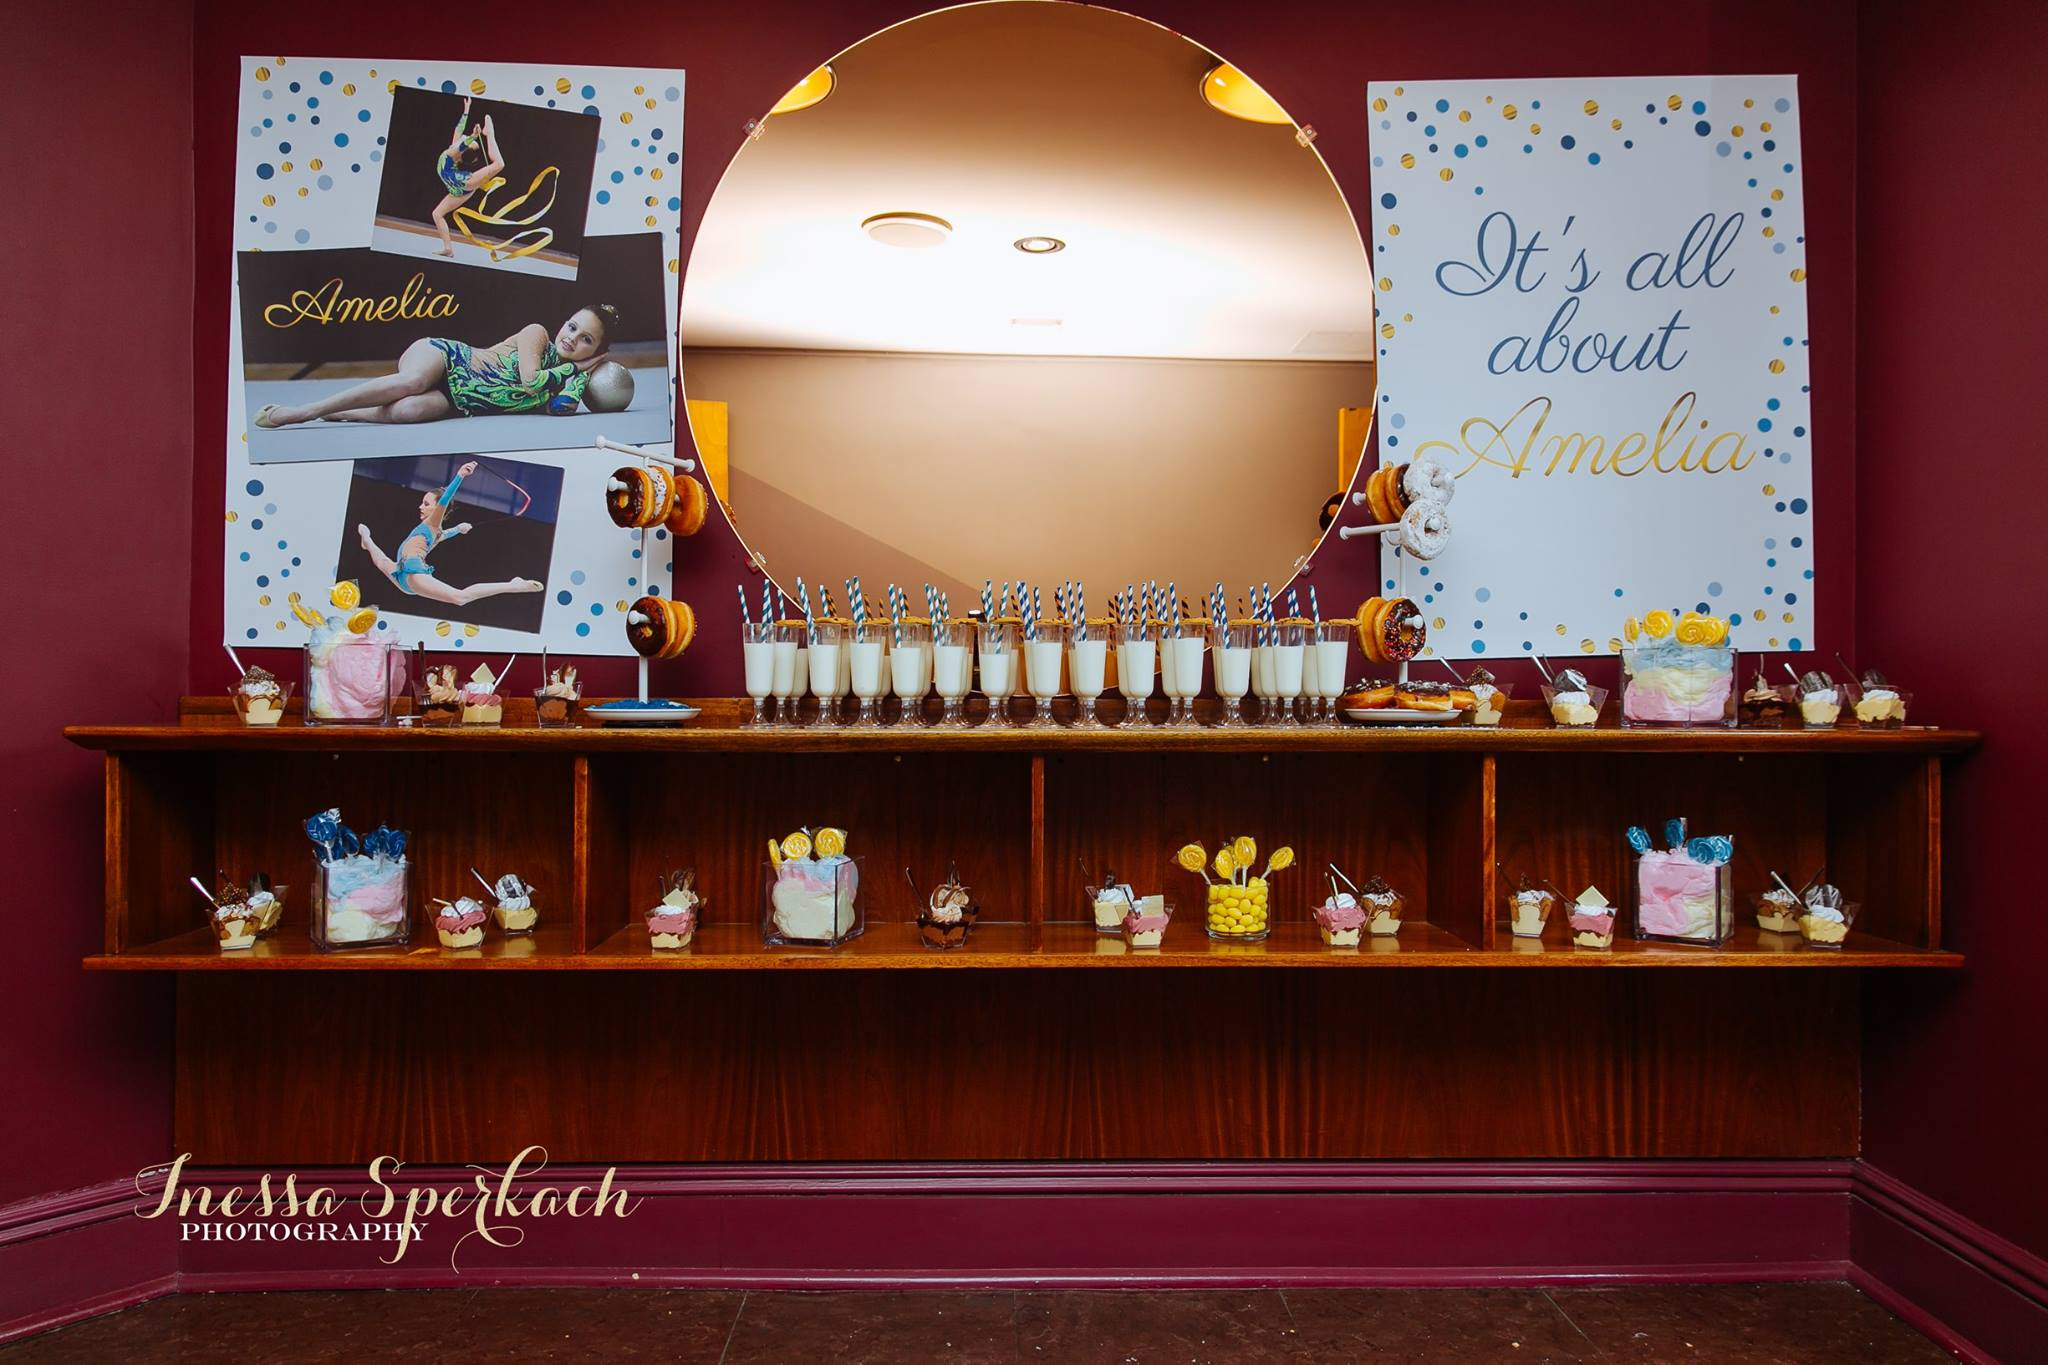 Set up snacks and drinks for guests to enjoy during the movie. Photo from    this    post.